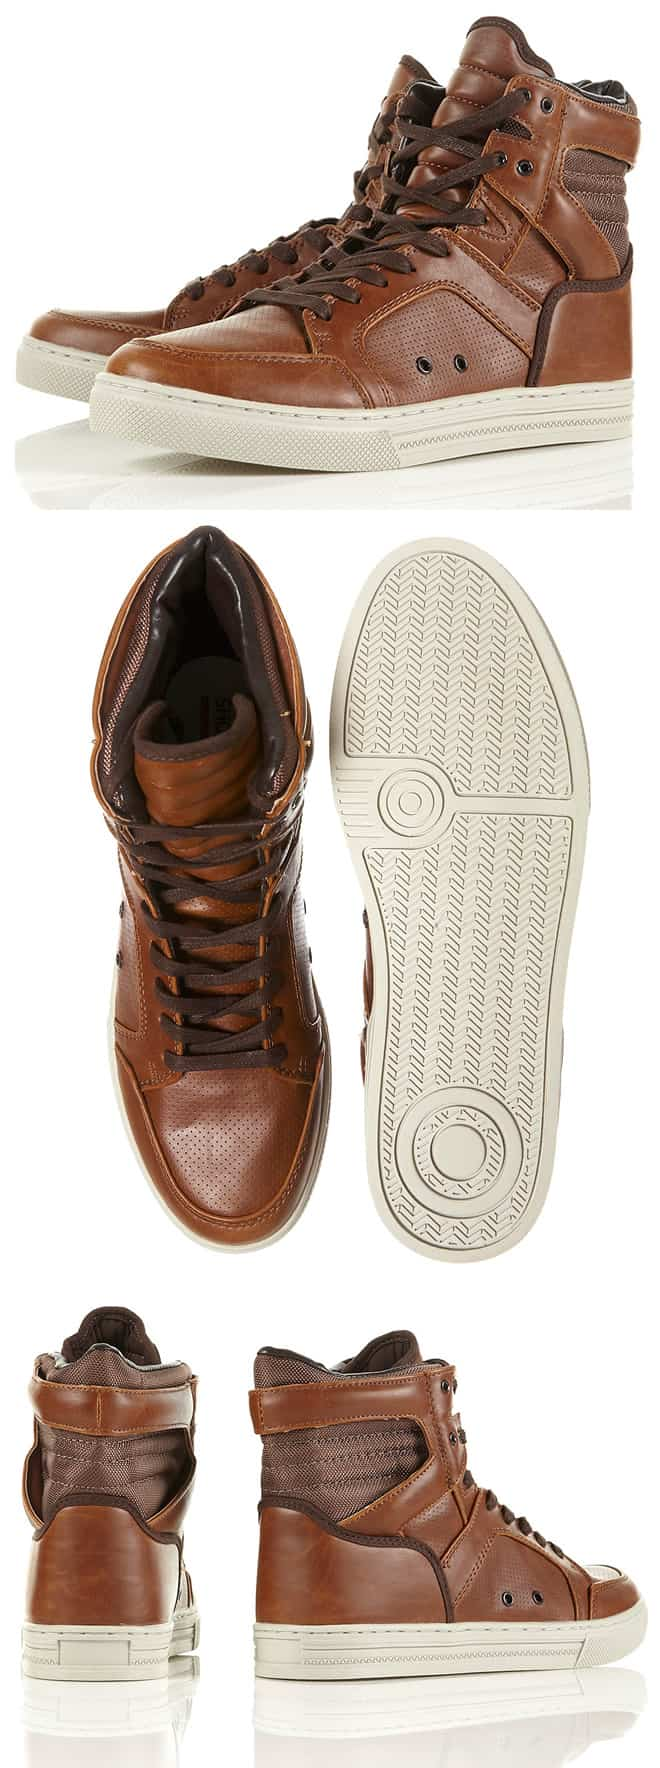 Shoelab Neptune 2basketball Brown Boots